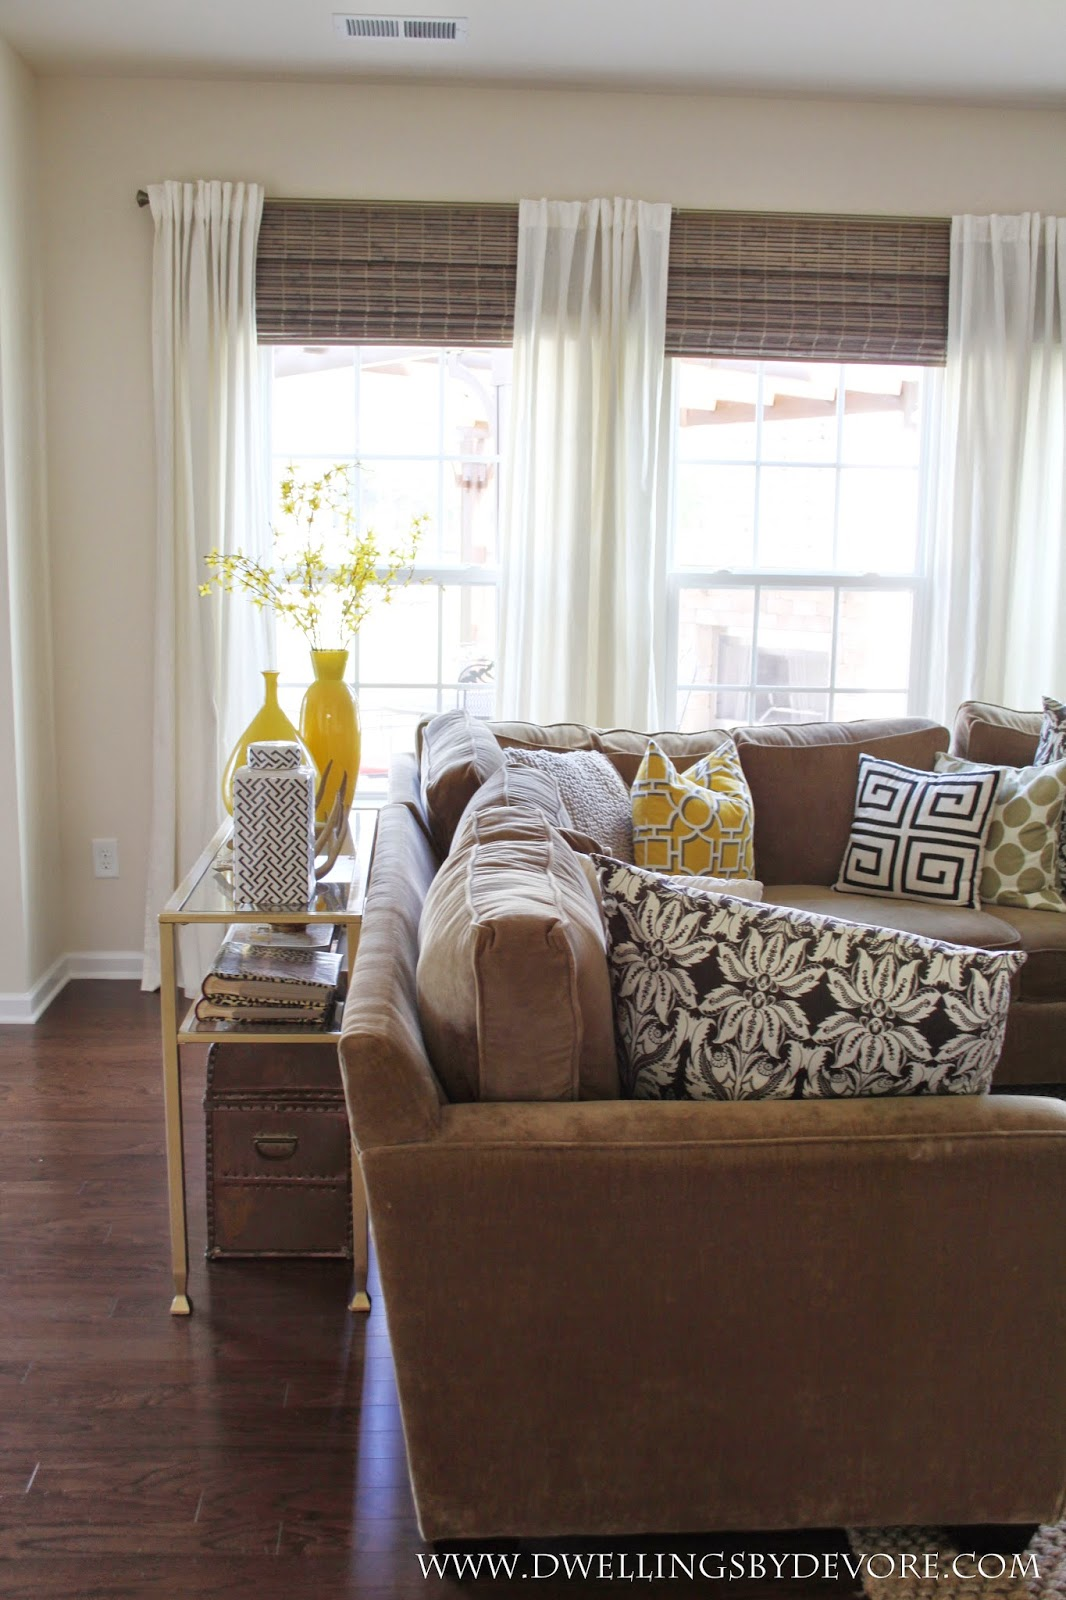 How To Make Your Room Look Bigger Dwellings By Devore Bamboo Shades To Make Your Windows Look Larger